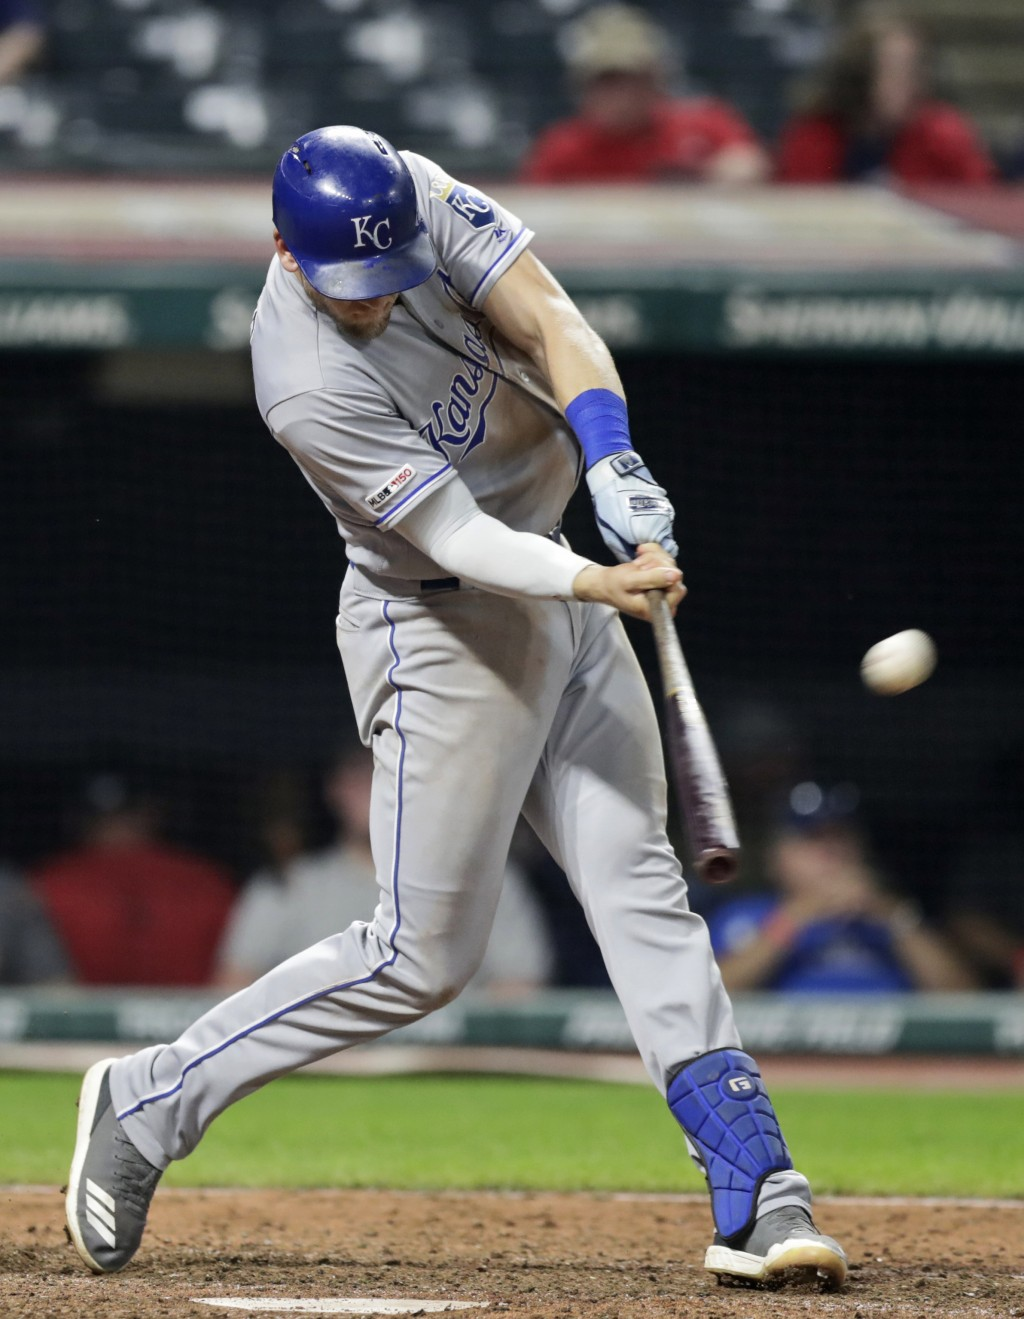 Kansas City Royals' Hunter Dozier hits a grand slam in the ninth inning of a baseball game against the Cleveland Indians, Tuesday, June 25, 2019, in C...